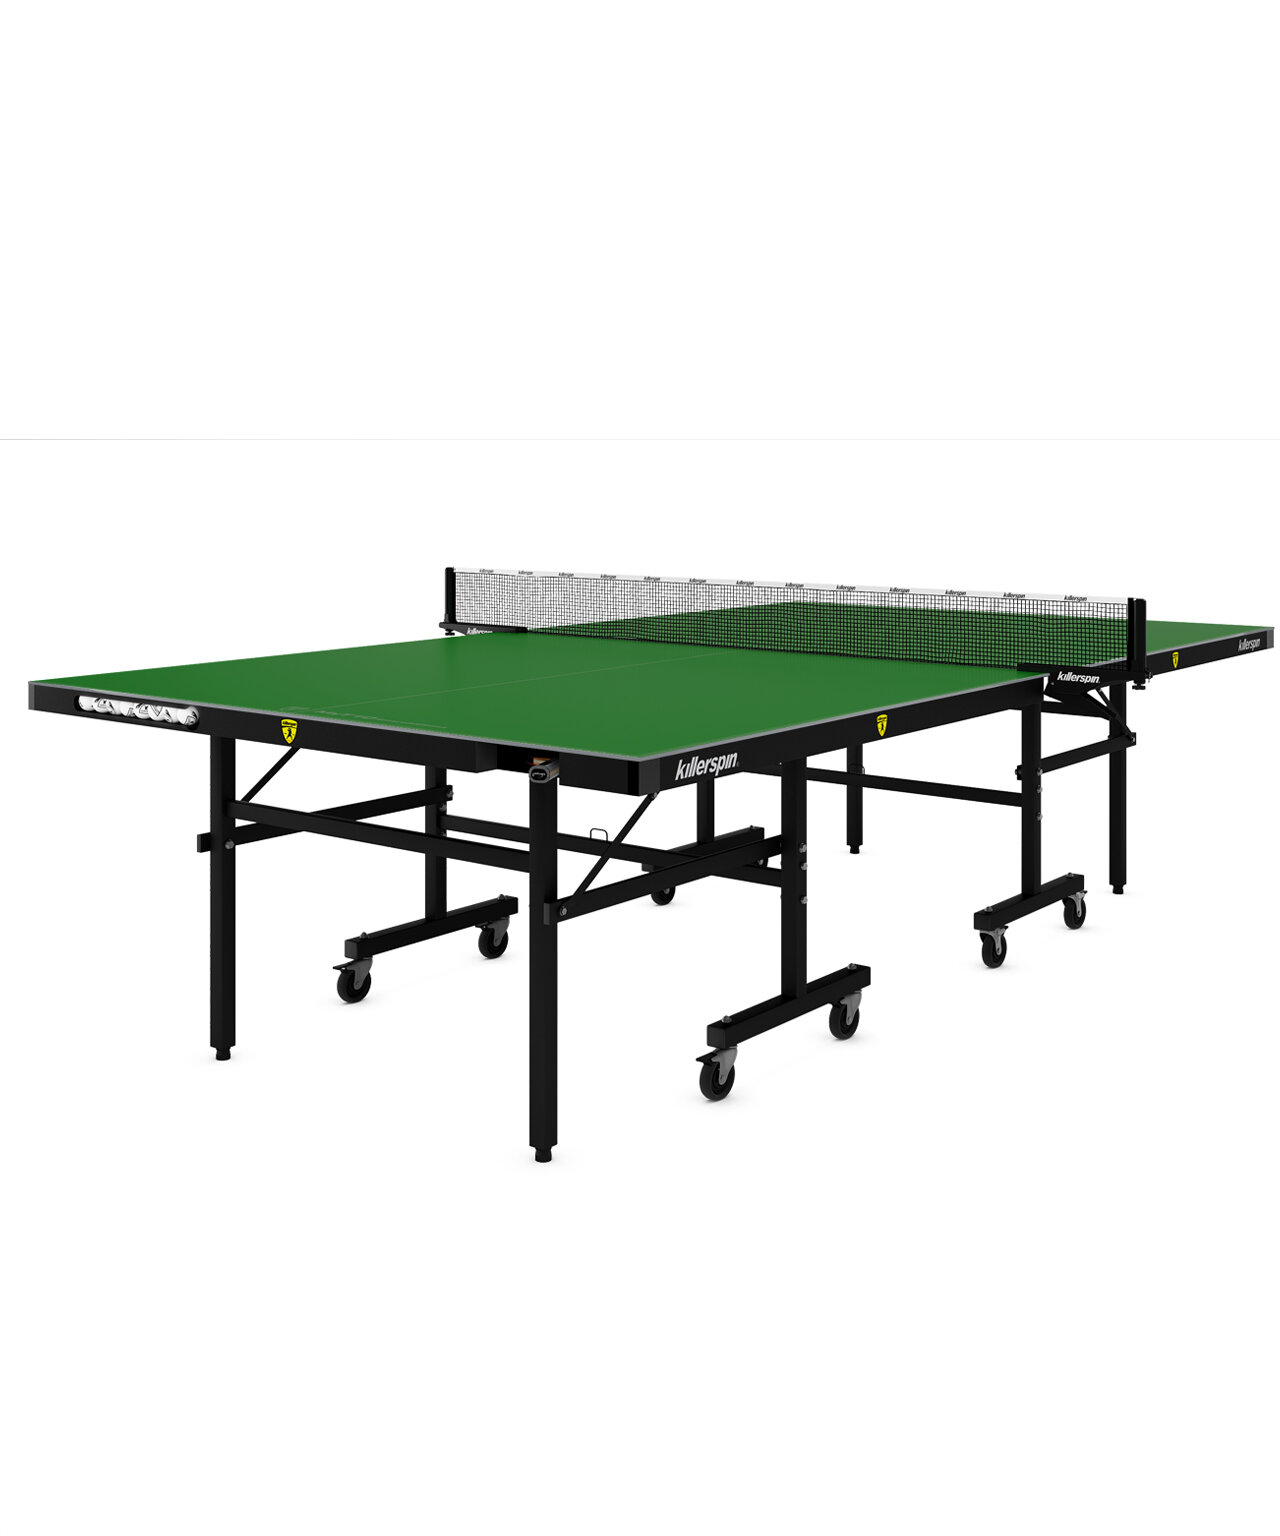 8c3c7cb22e7 Killerspin MyT10 Playback Indoor Outdoor Table Tennis Table